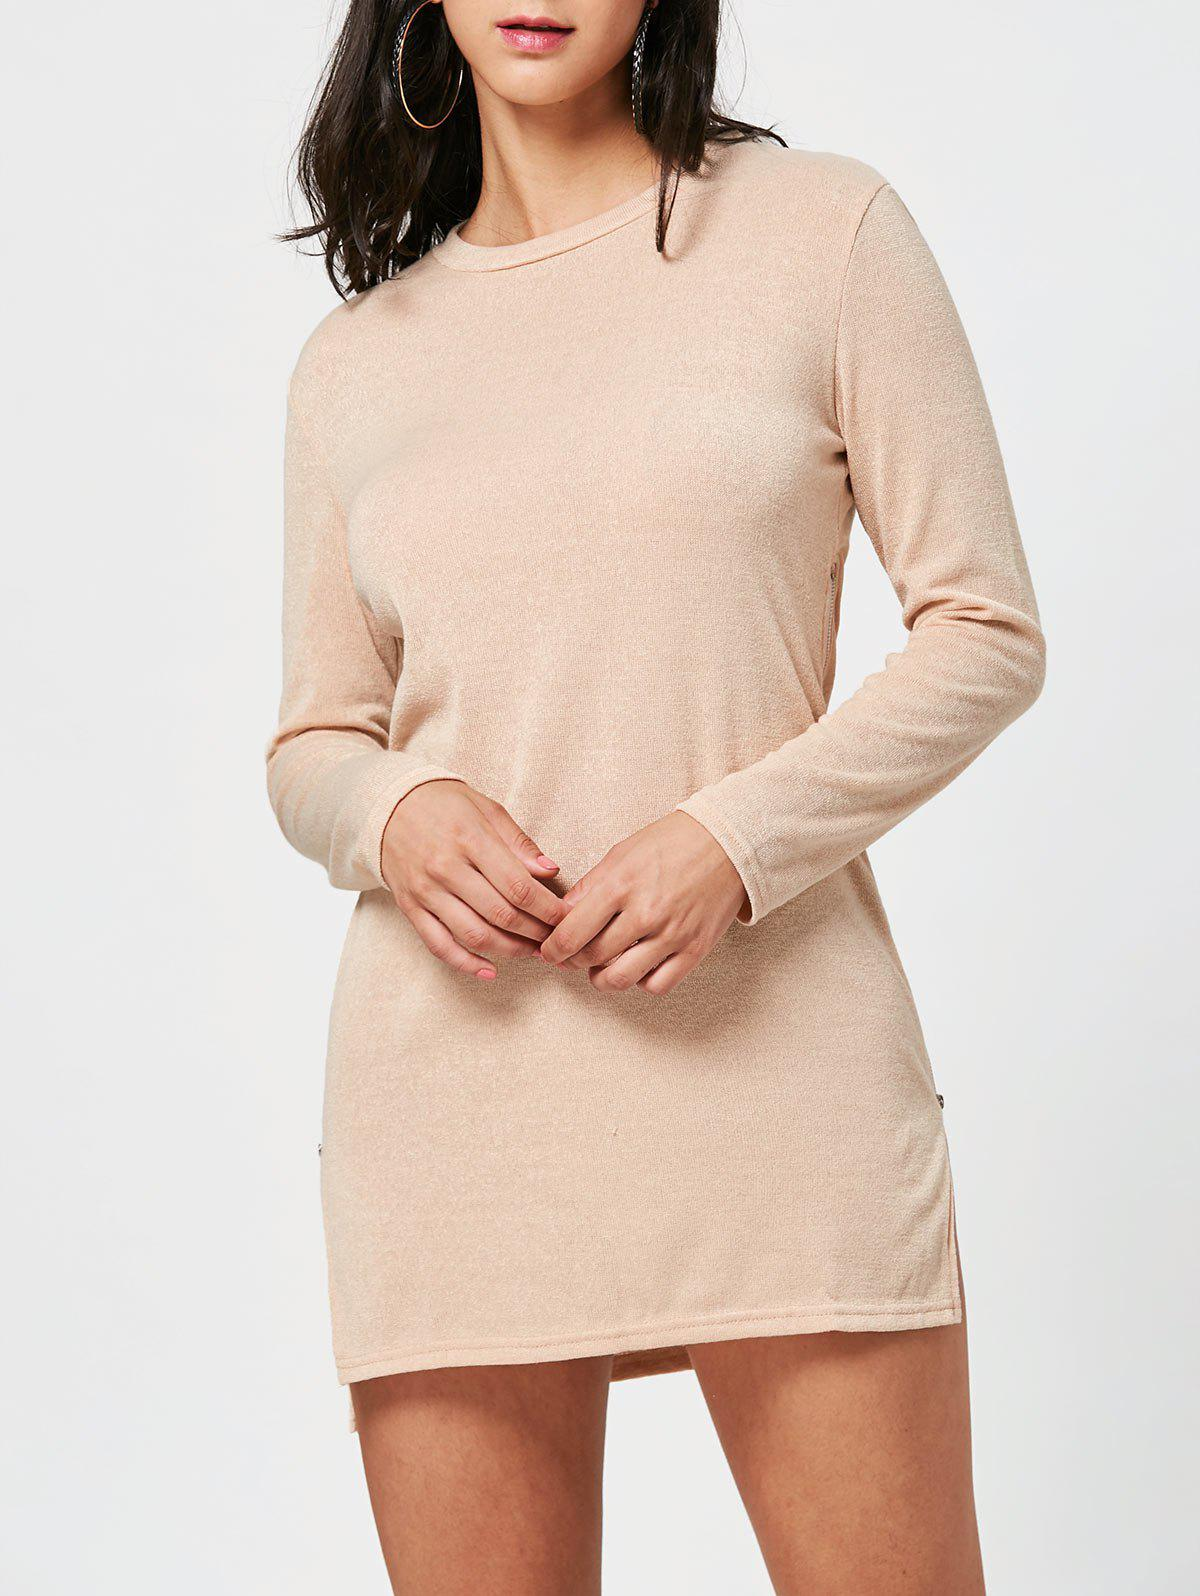 Zipper Side Long Sleeve Shift Sweater Dress - APRICOT XL